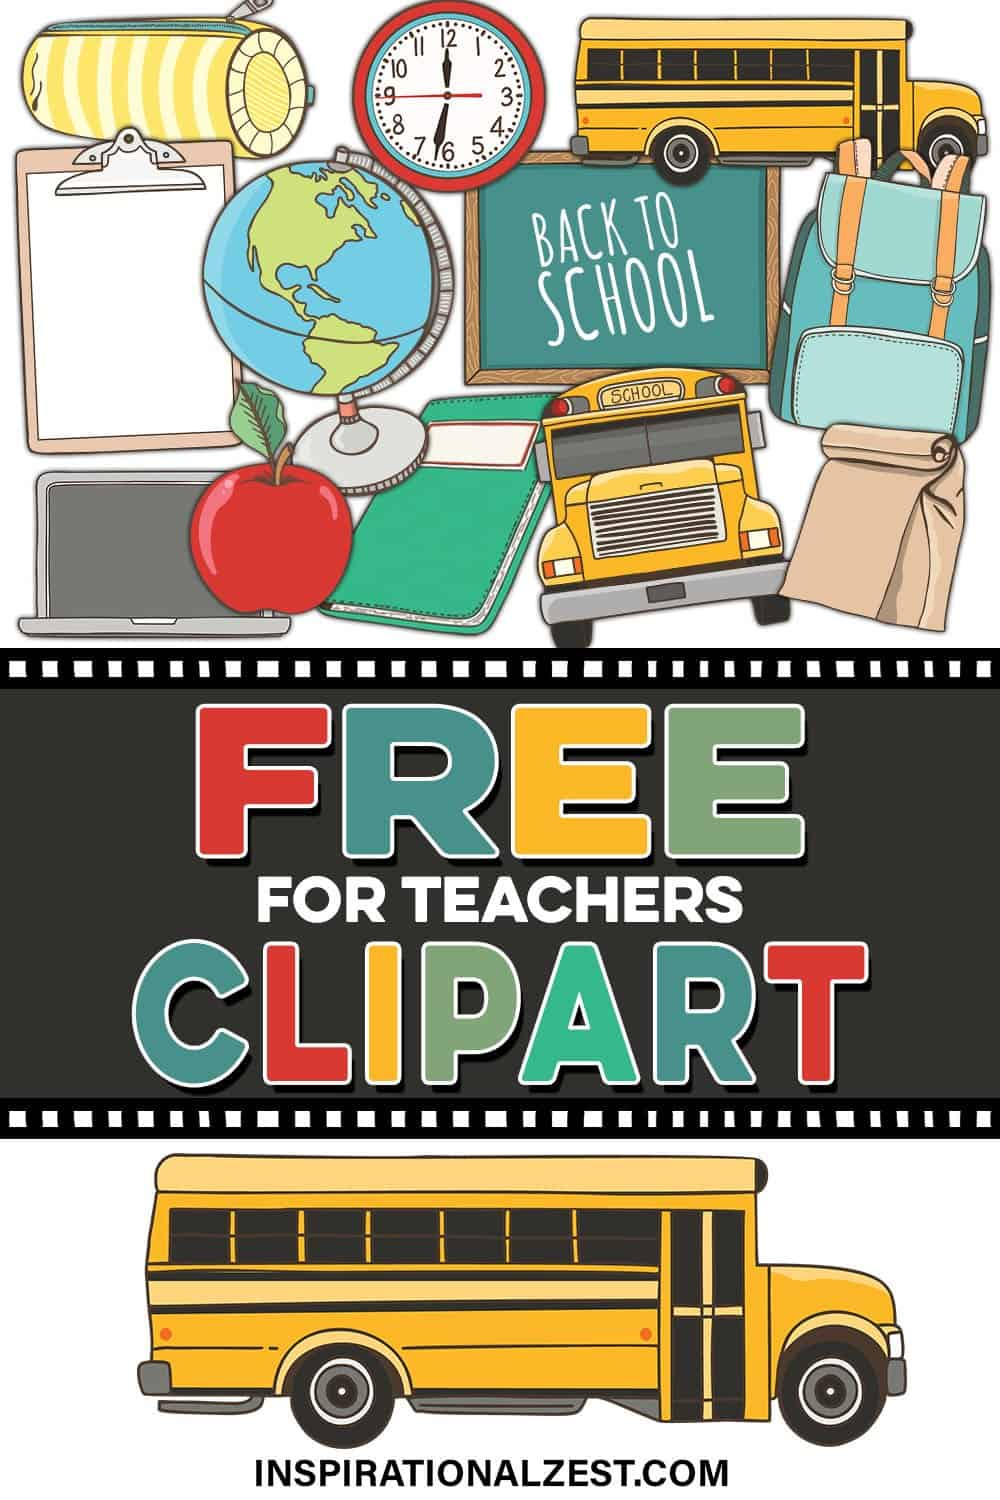 Back to School FREE ClipArt for Teachers | PNG